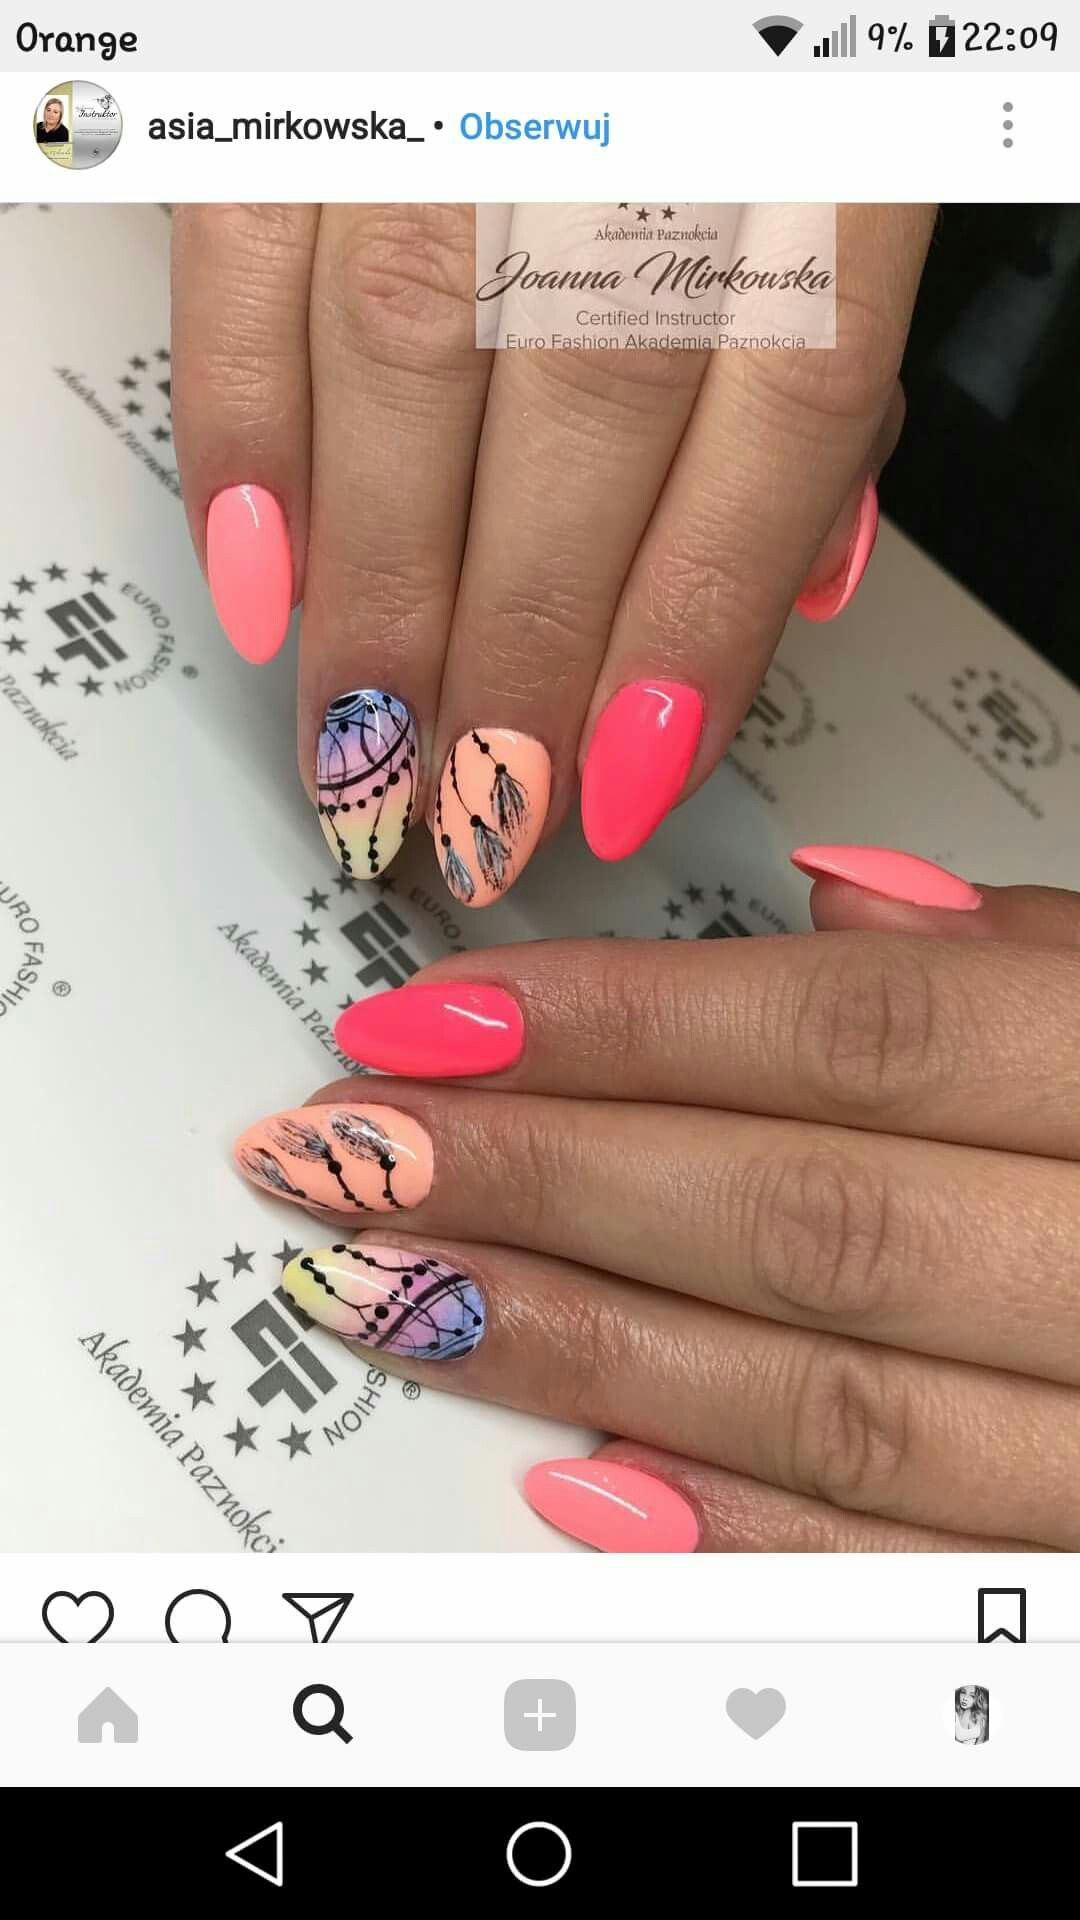 Pin By Angelique Rolland On Attrape Reve Nails Summer Nails